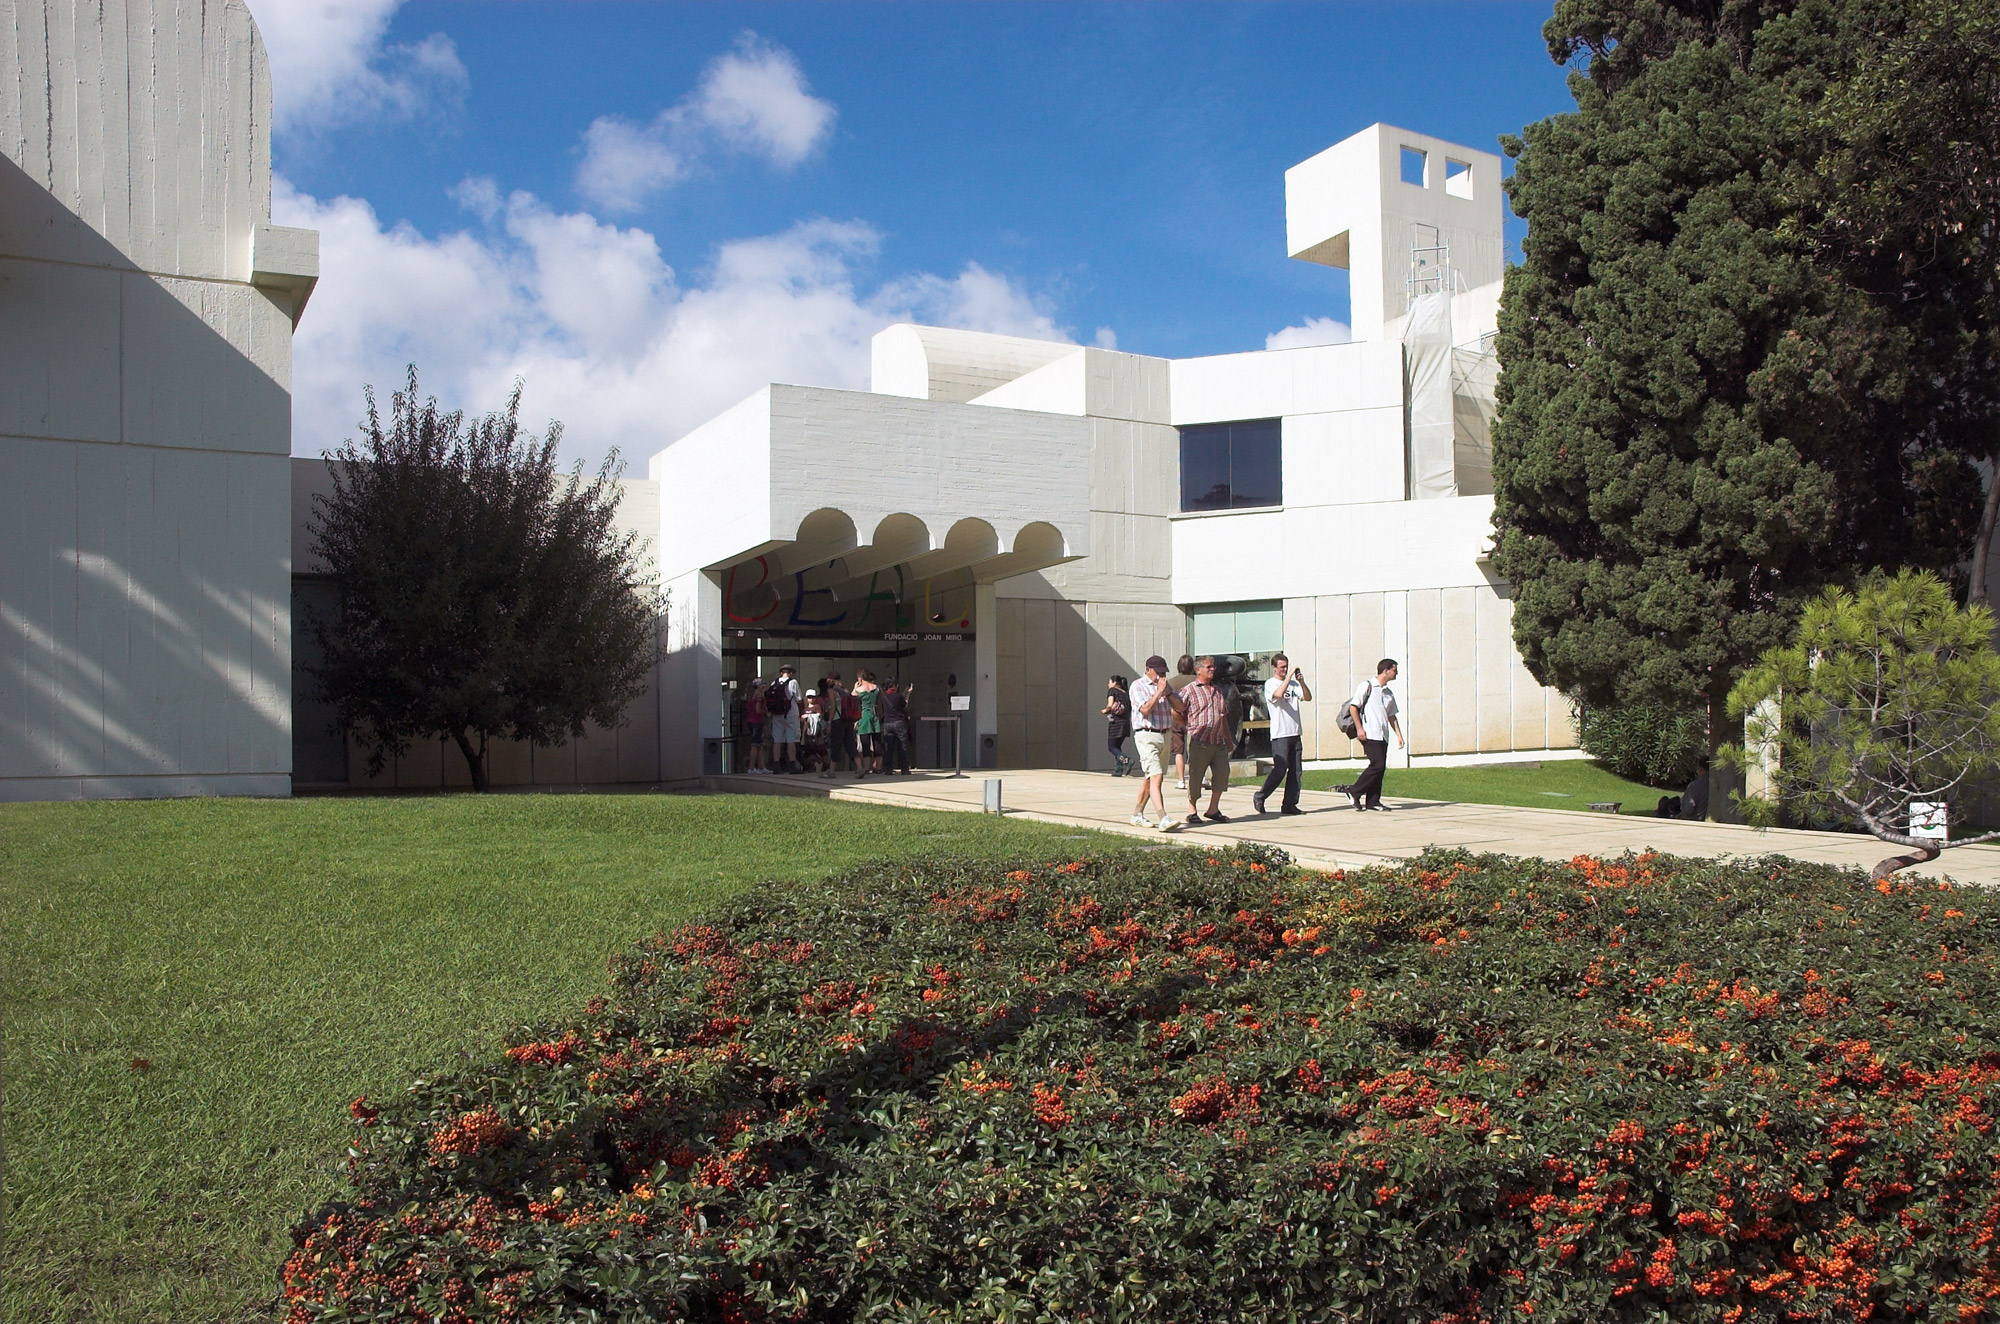 http://upload.wikimedia.org/wikipedia/commons/f/f6/Fundacion-miro.jpg